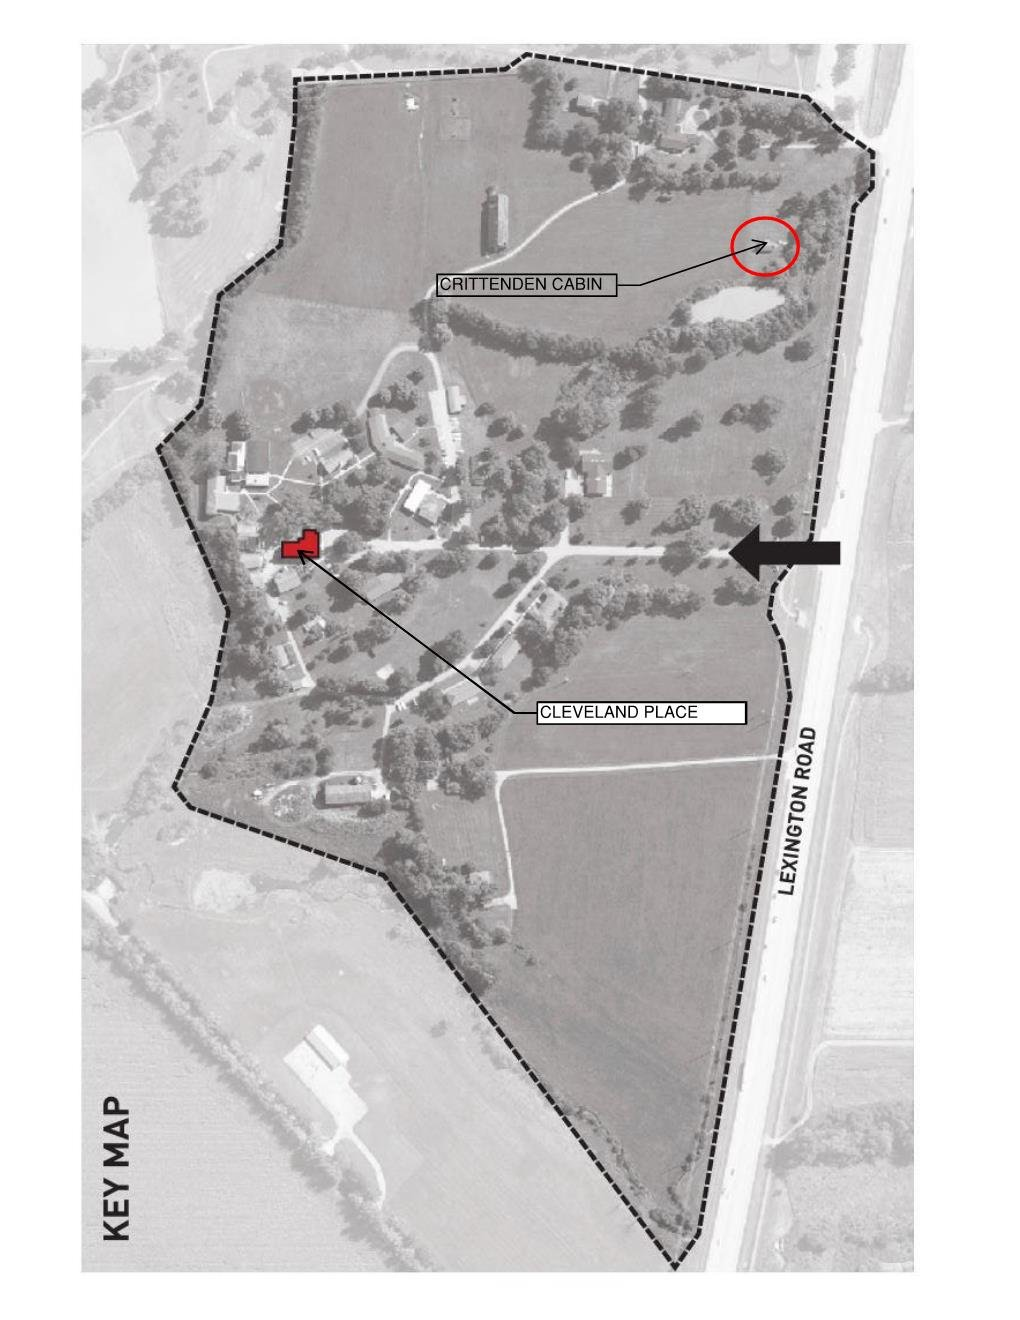 Cleveland Place Site Plan - Also showing relationship to Crittenden Cabin as currently relocated on site.